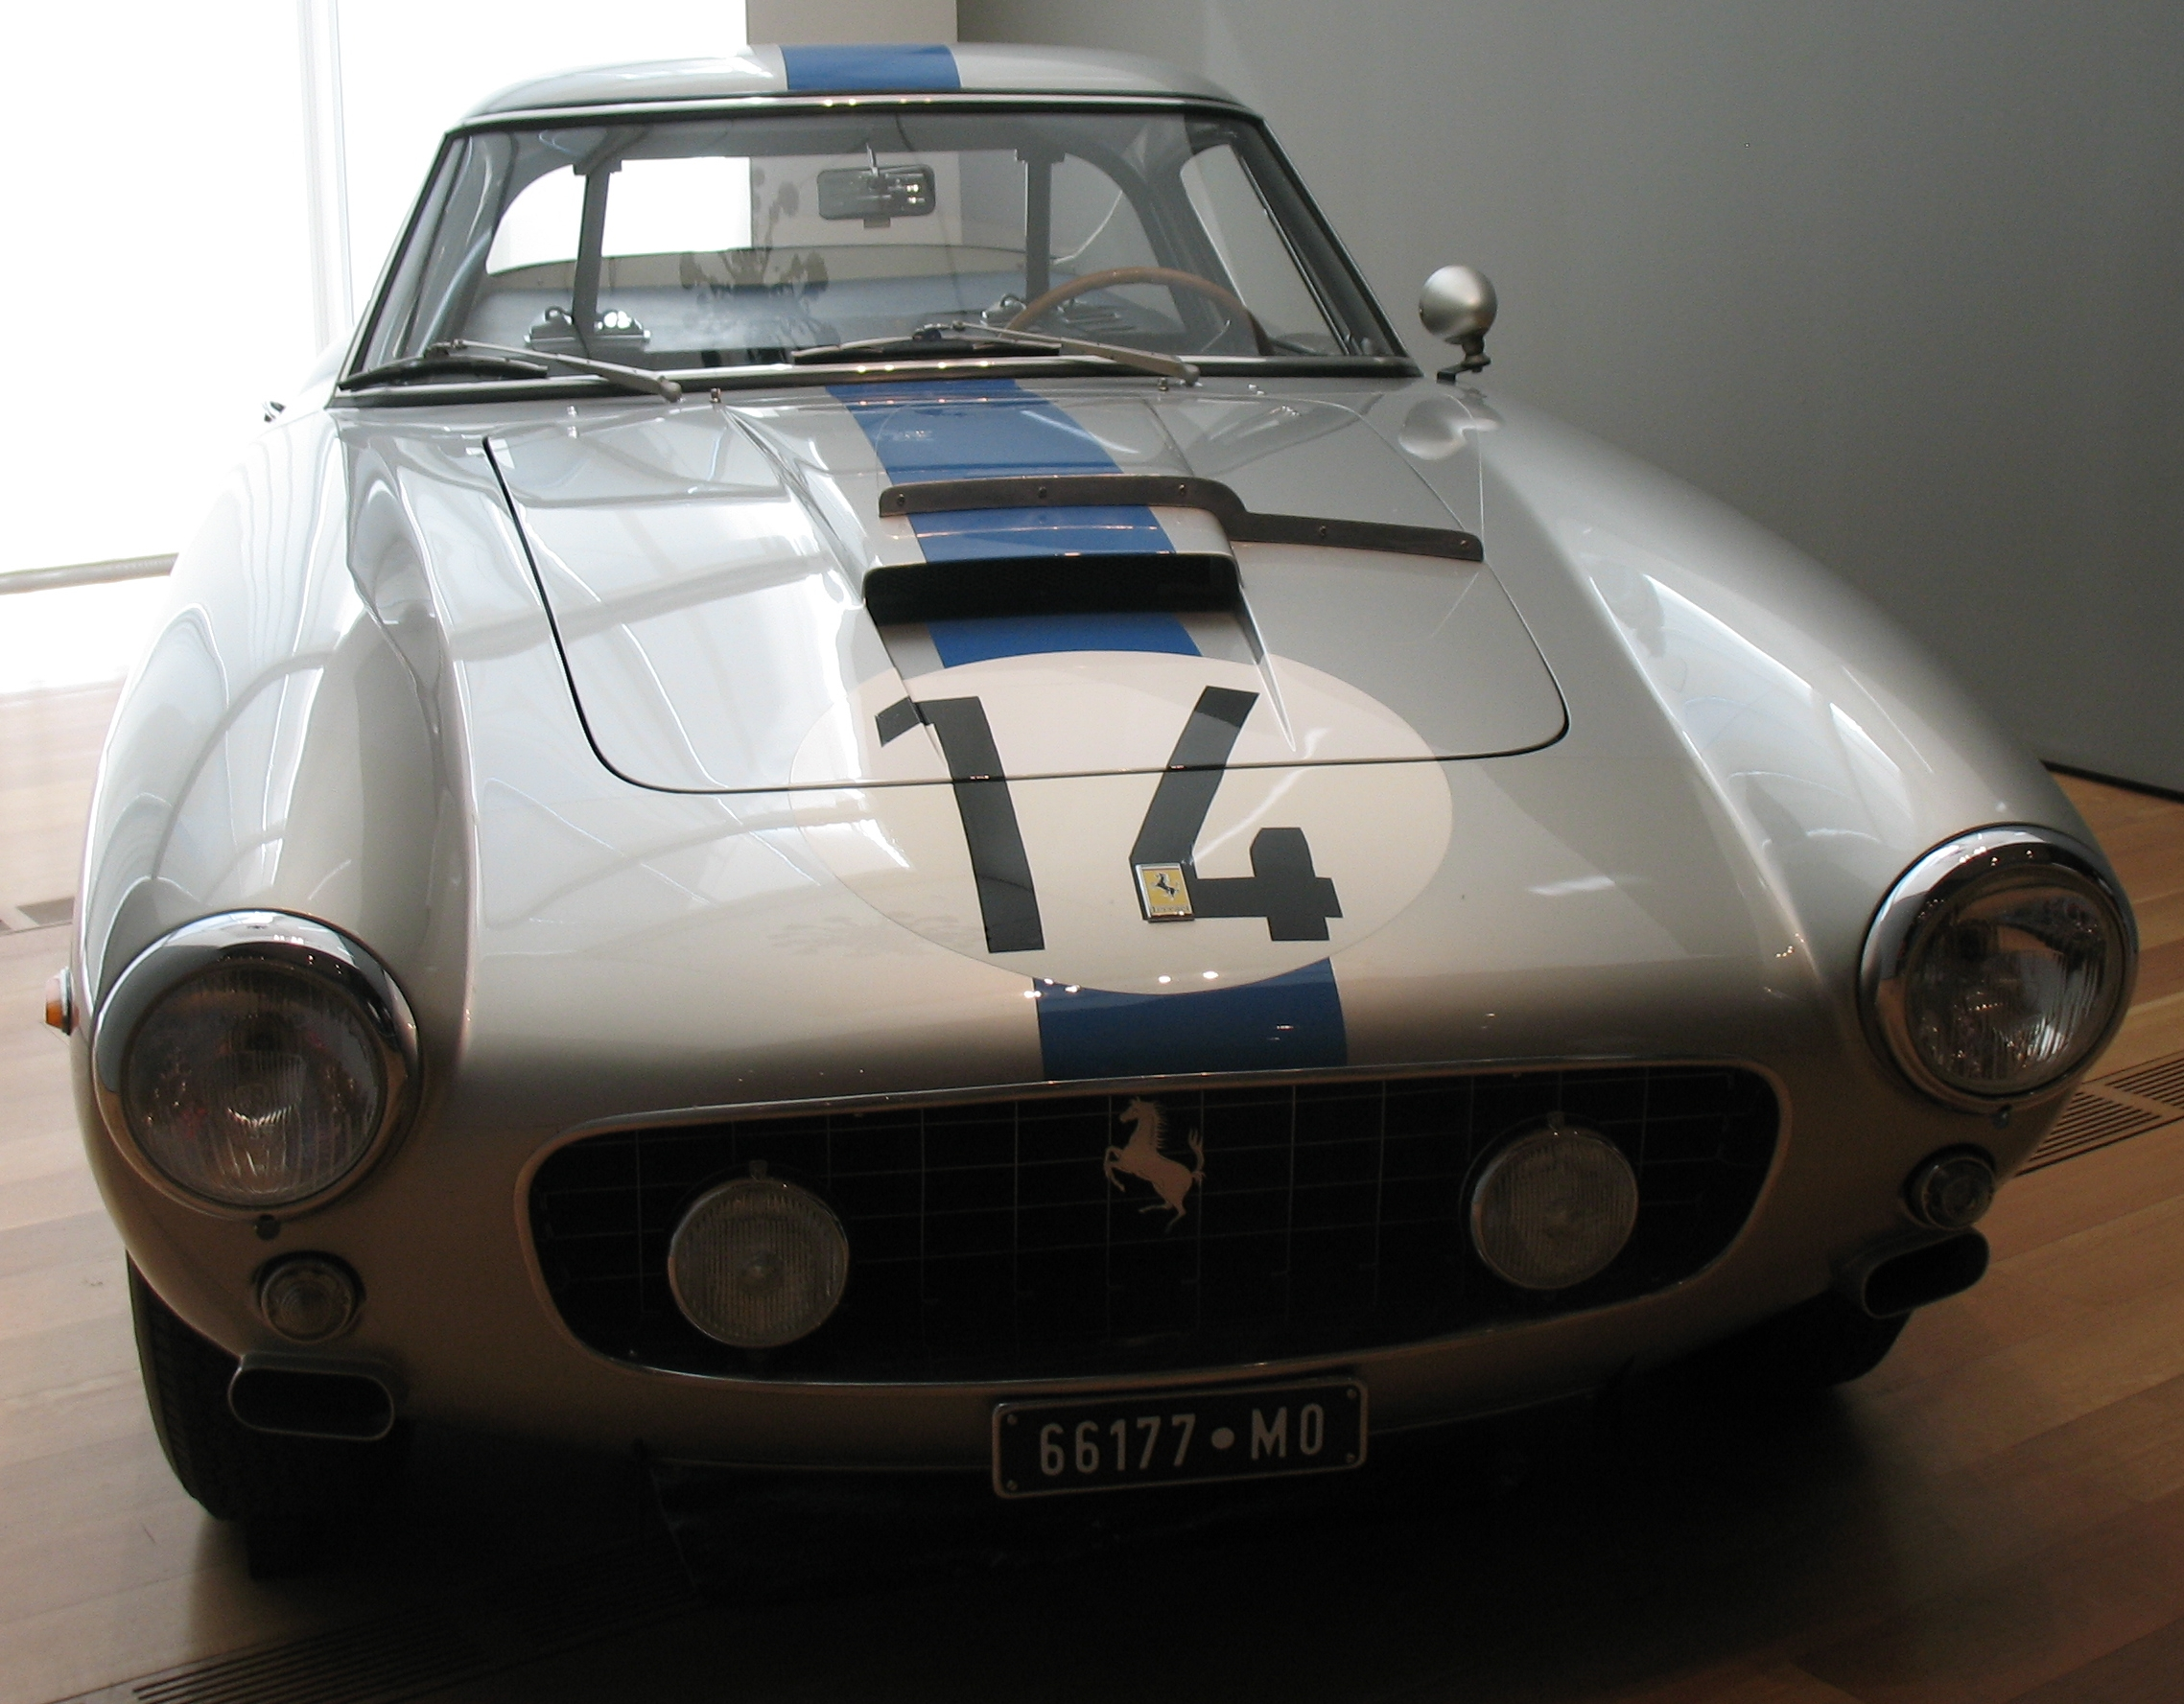 Image of a silver classic car with a number 14 on the bonnet